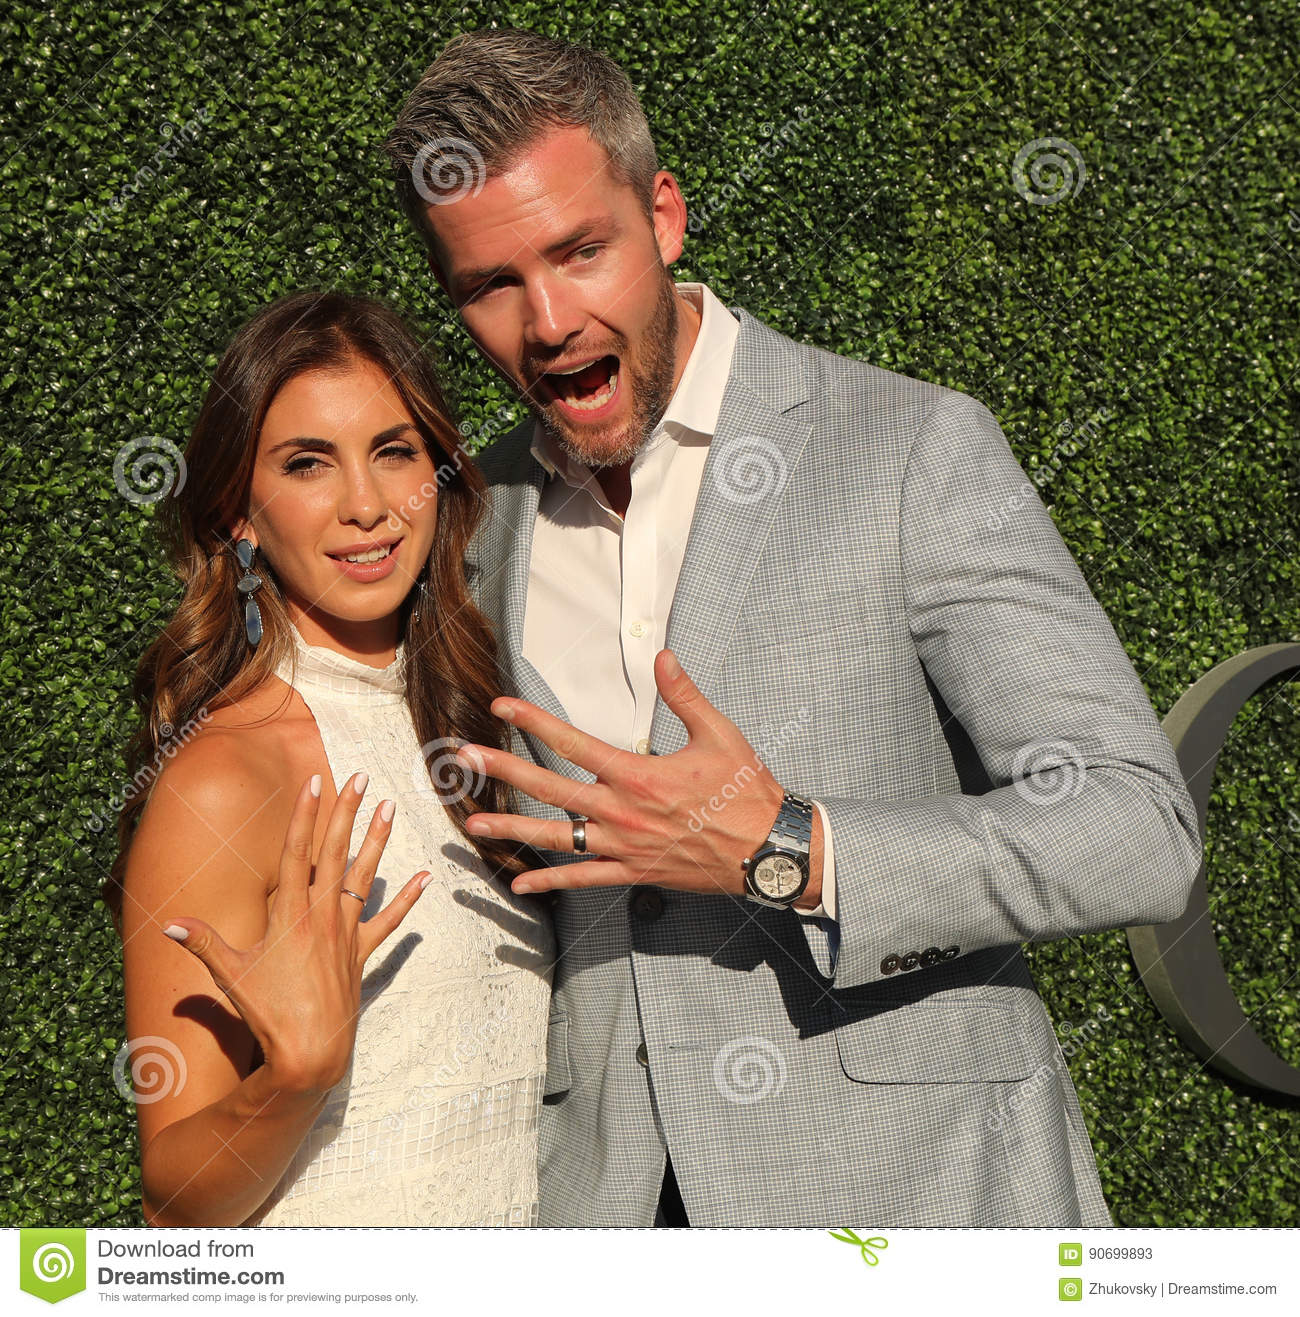 American Real Estate Salesperson And Reality Television Star Ryan Serhant R And Emilia Bechrakis Attend US